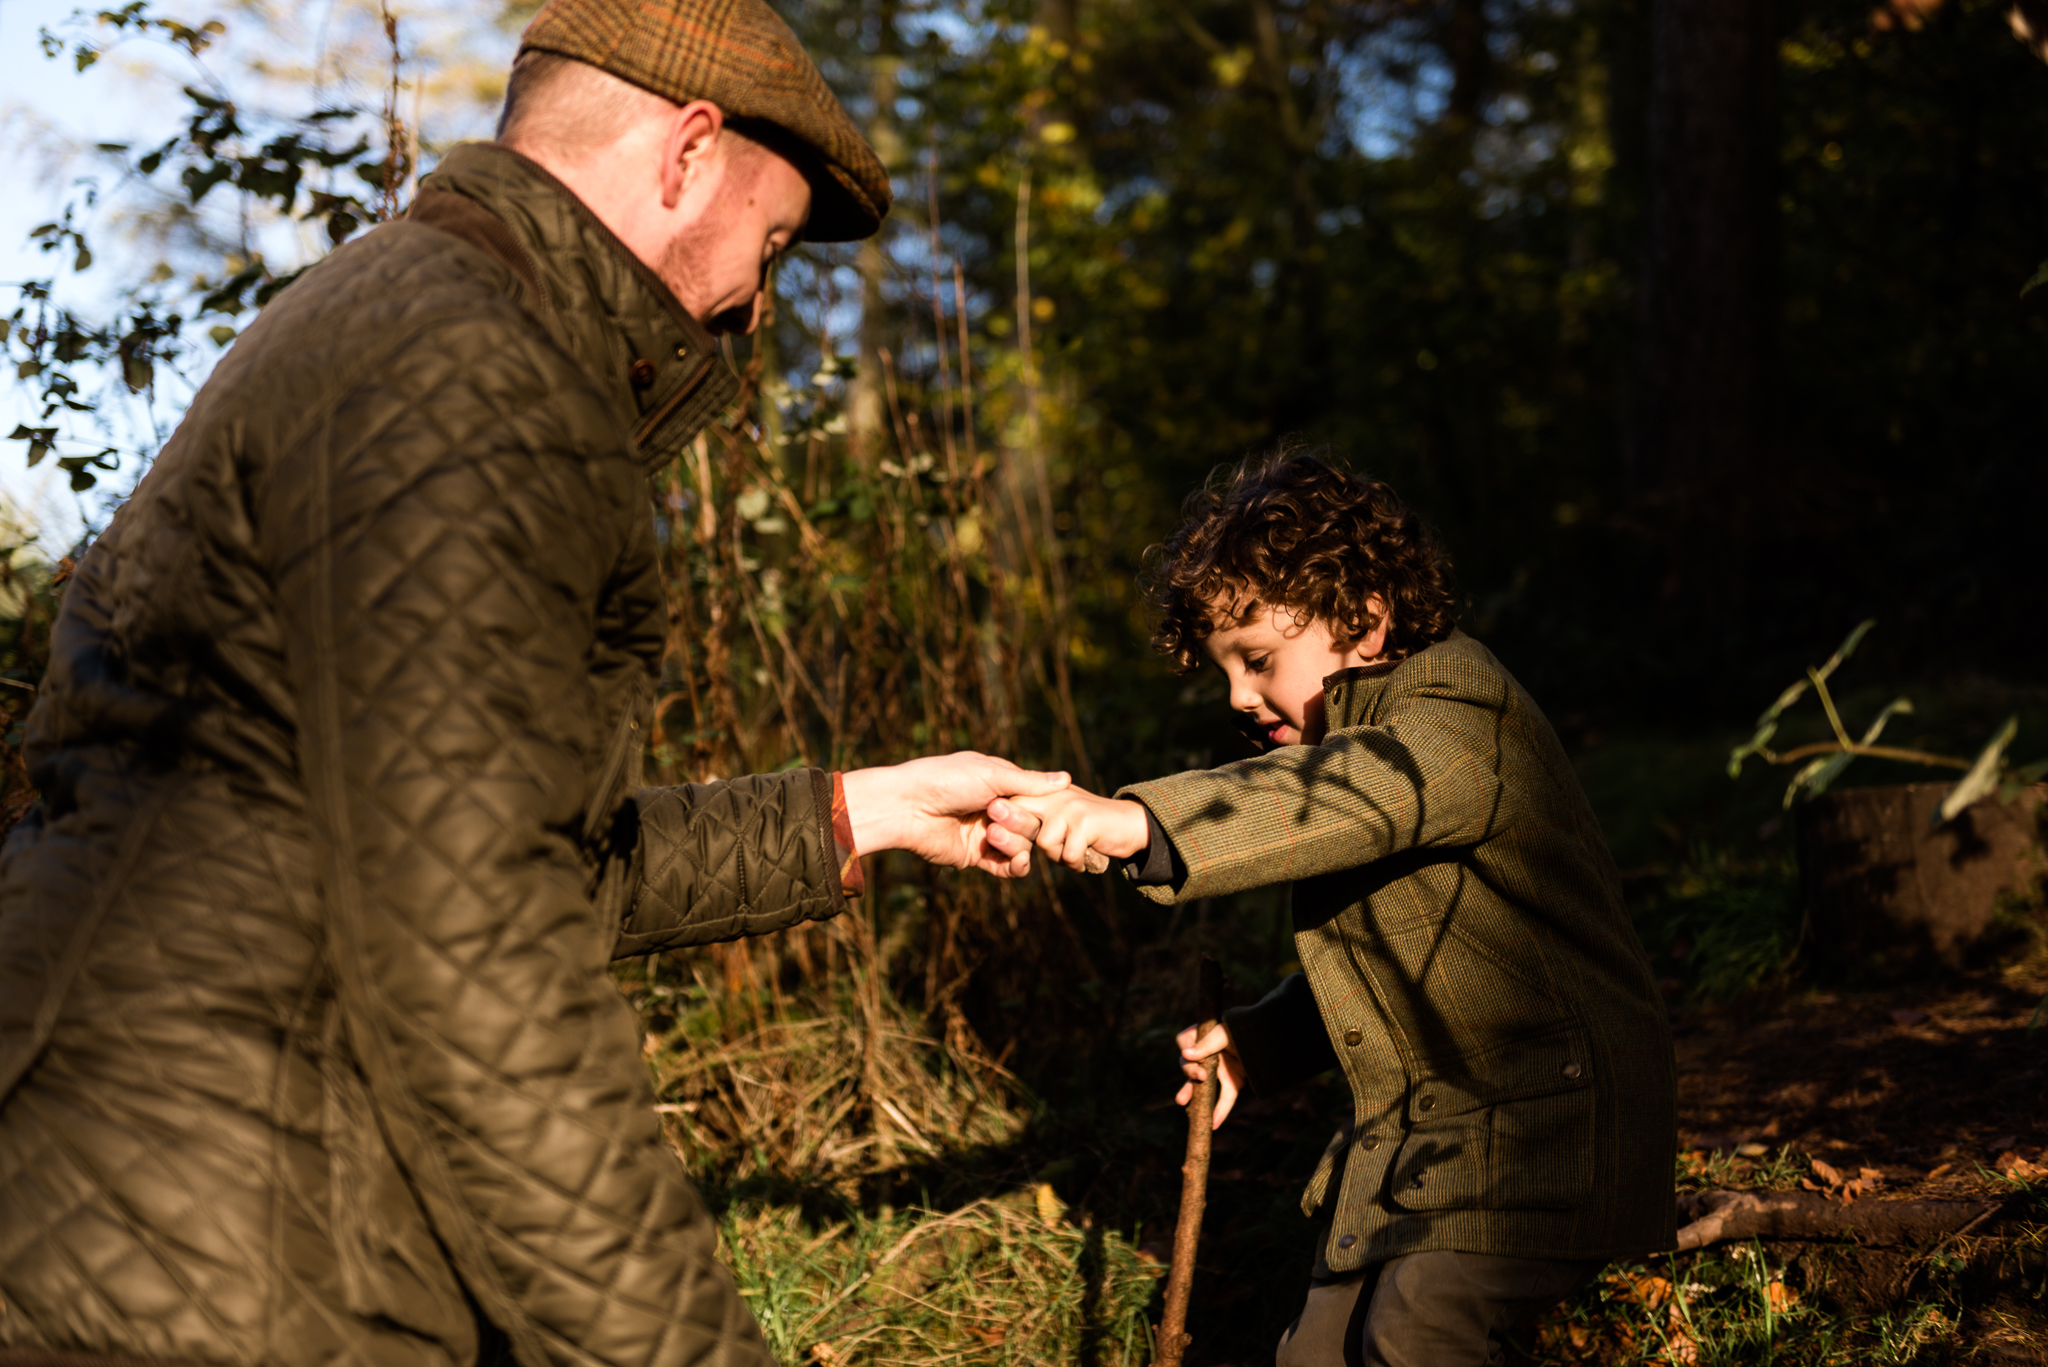 Autumn Documentary Lifestyle Family Photography at Clent Hills, Worcestershire Country Park countryside outdoors nature - Jenny Harper-19.jpg